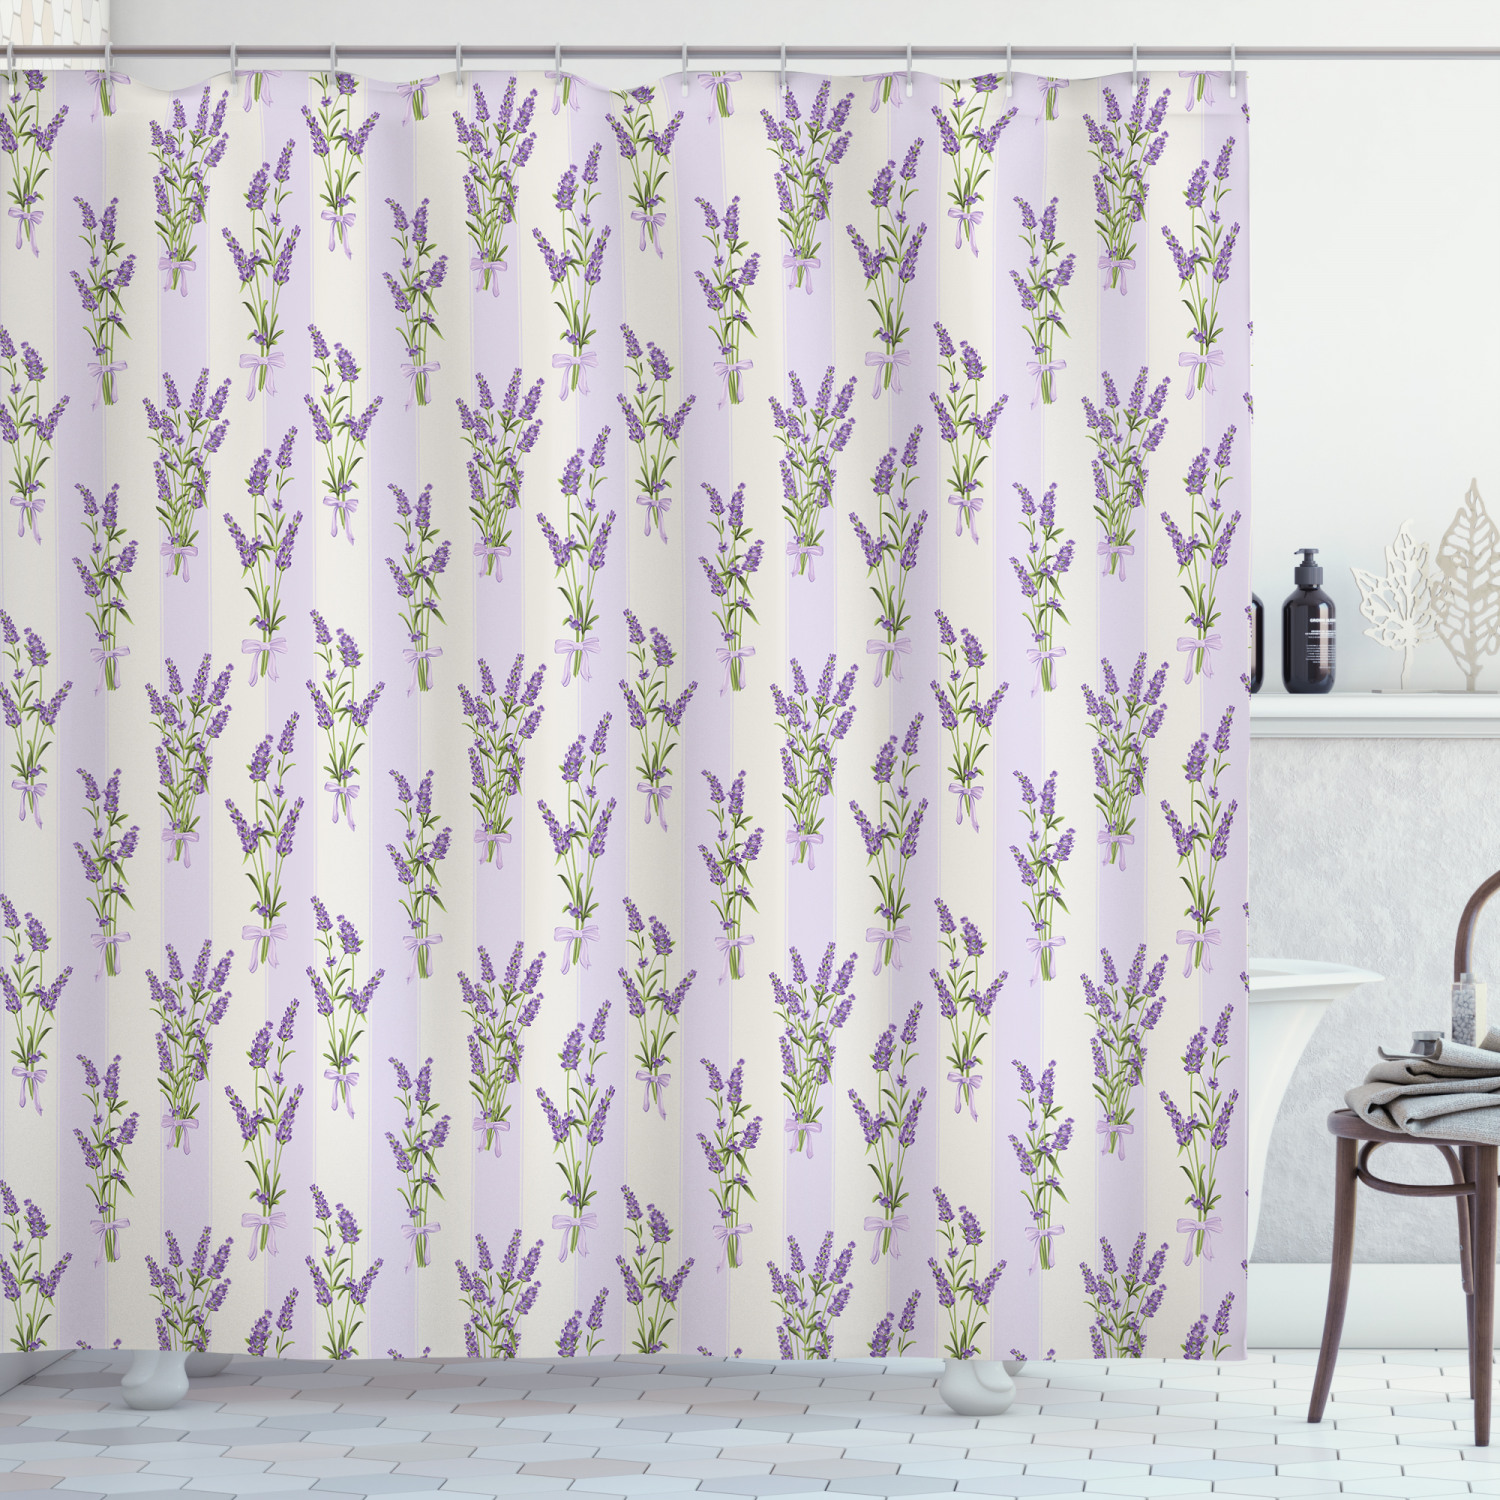 lavender shower curtain stripes and flowers with ribbons romantic country spring season inspired design art fabric bathroom set with hooks purple